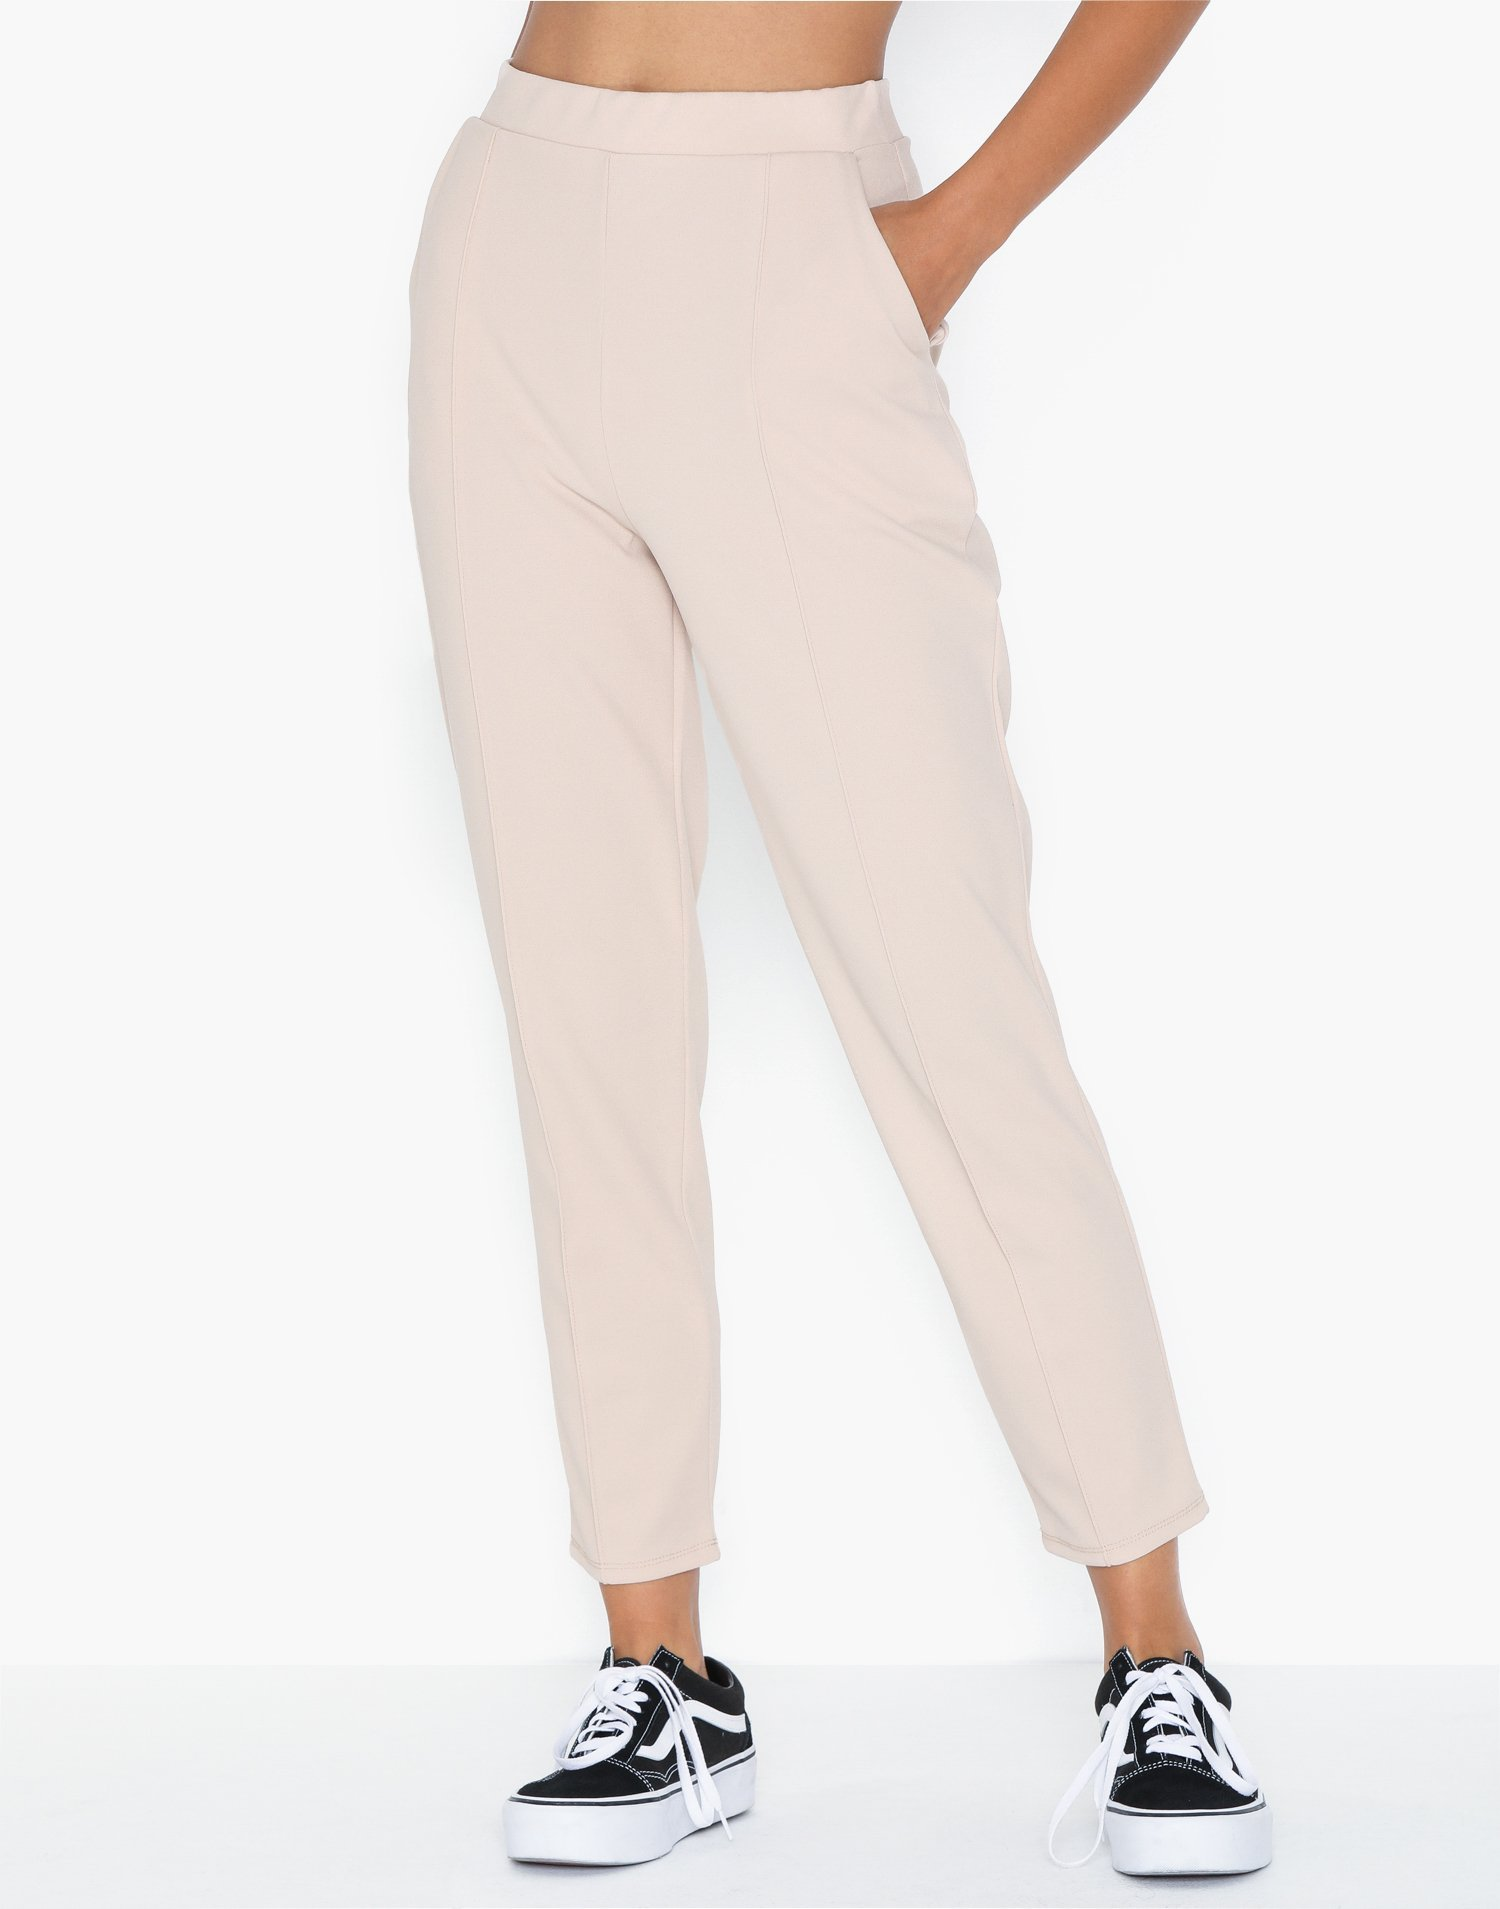 Gorgeous Crepe Pants by Nly Trend